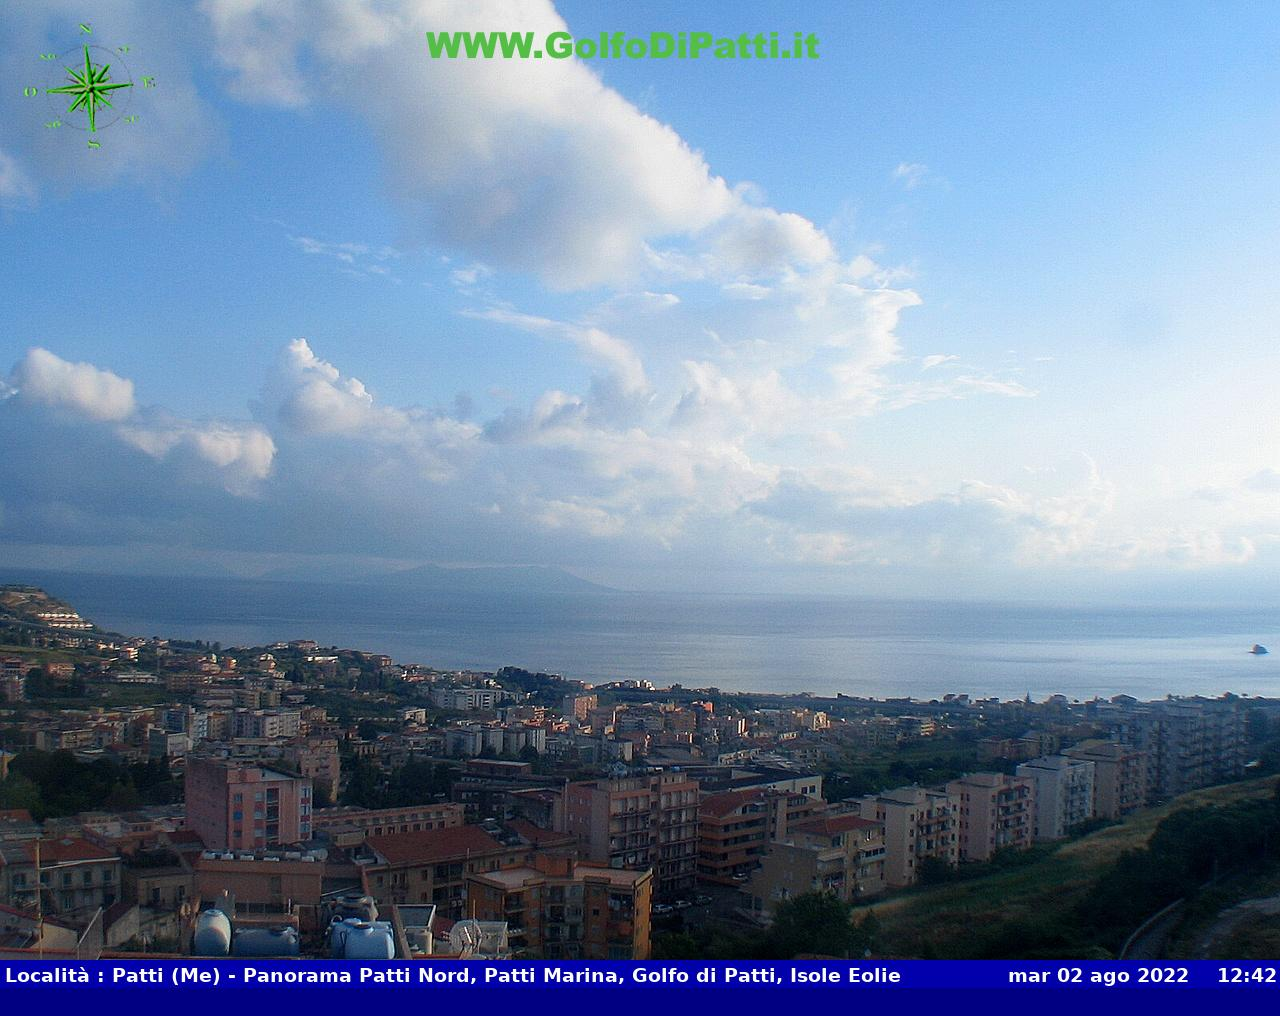 http://www.golfodipatti.it/webcam.php